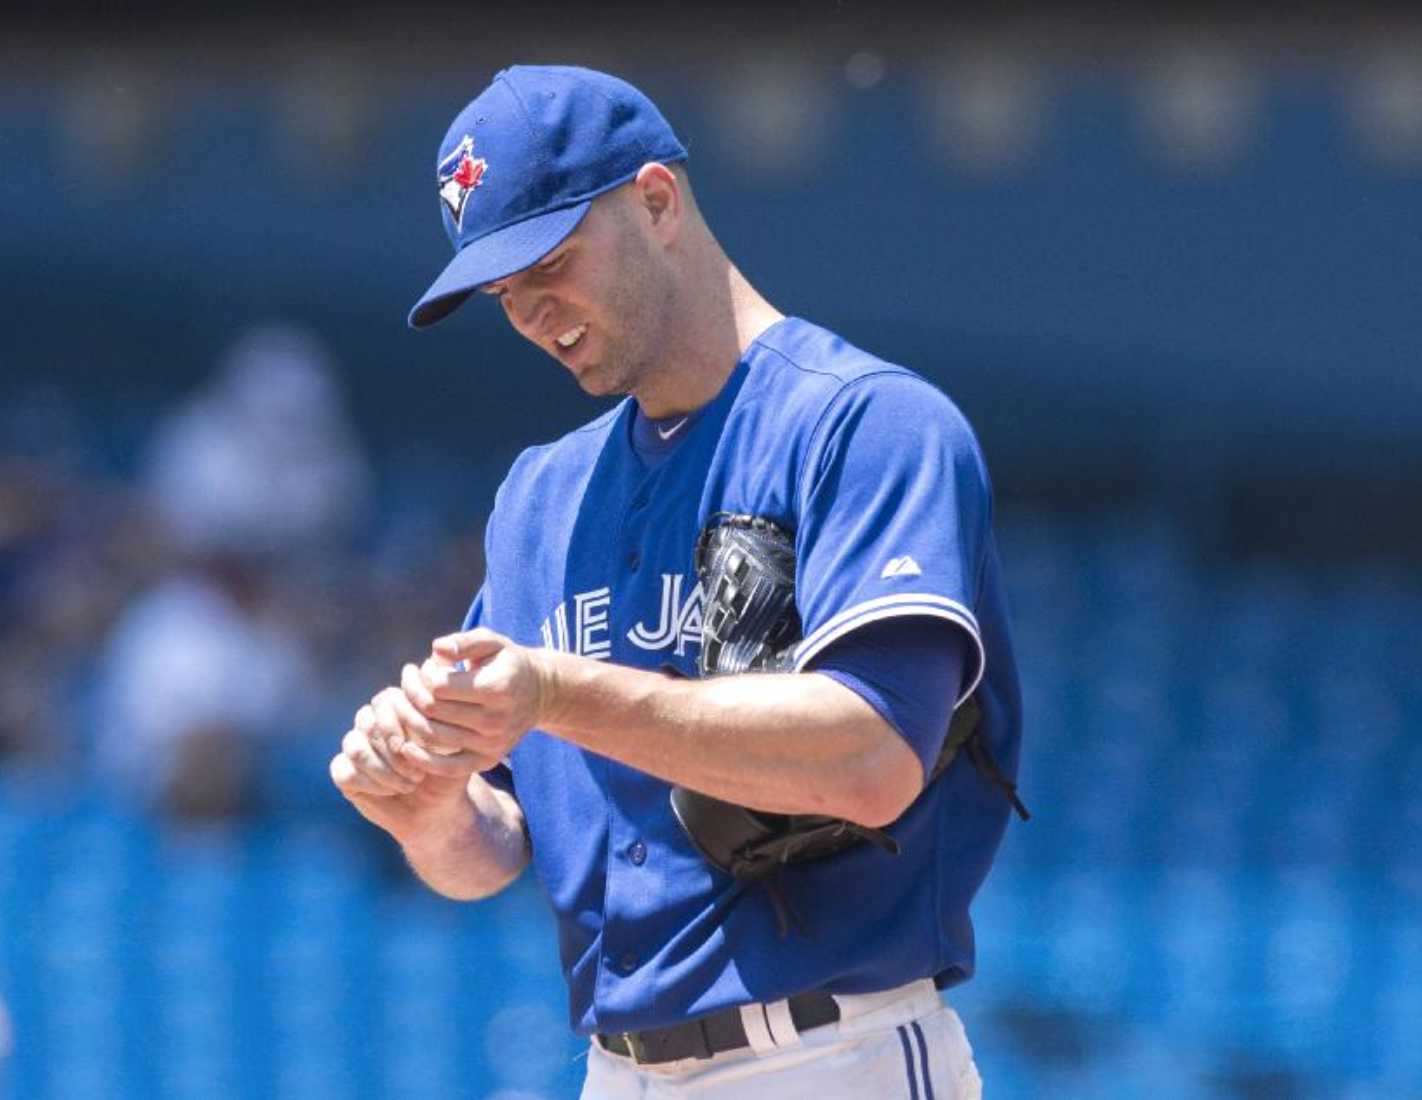 THE SIGNING OF J.A. HAPP (AND SIMULTANEOUS REALIZATION THAT PRICE WILL LIKELY NOT BE A BLUE JAY) HAS LEFT SOME FANS PUZZLED. BUT IT'S NOT ALL DOOM AND GLOOM FOR THE 2016 ROTATION. (PHOTO : CHRIS YOUNG / THE CANADIAN PRESS)